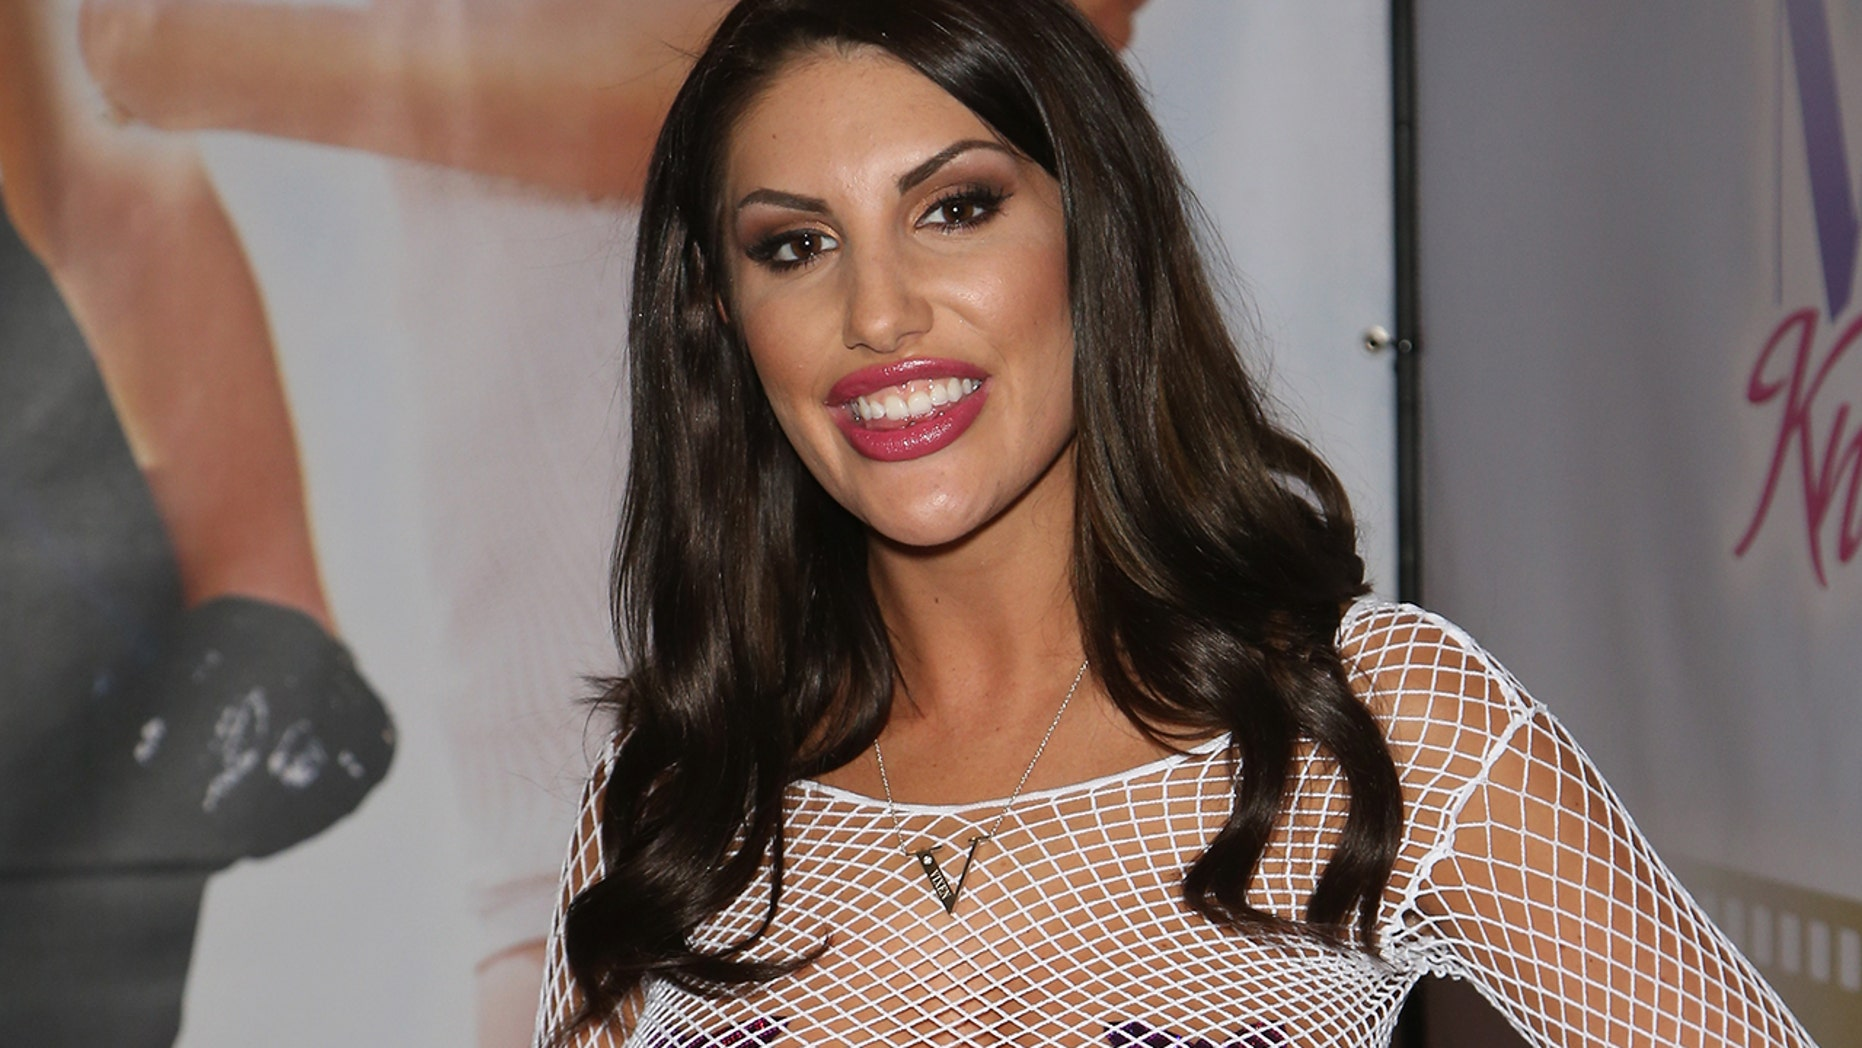 Porn star August Ames commits suicide after bullying for refusing to have  sex with man who did gay porn